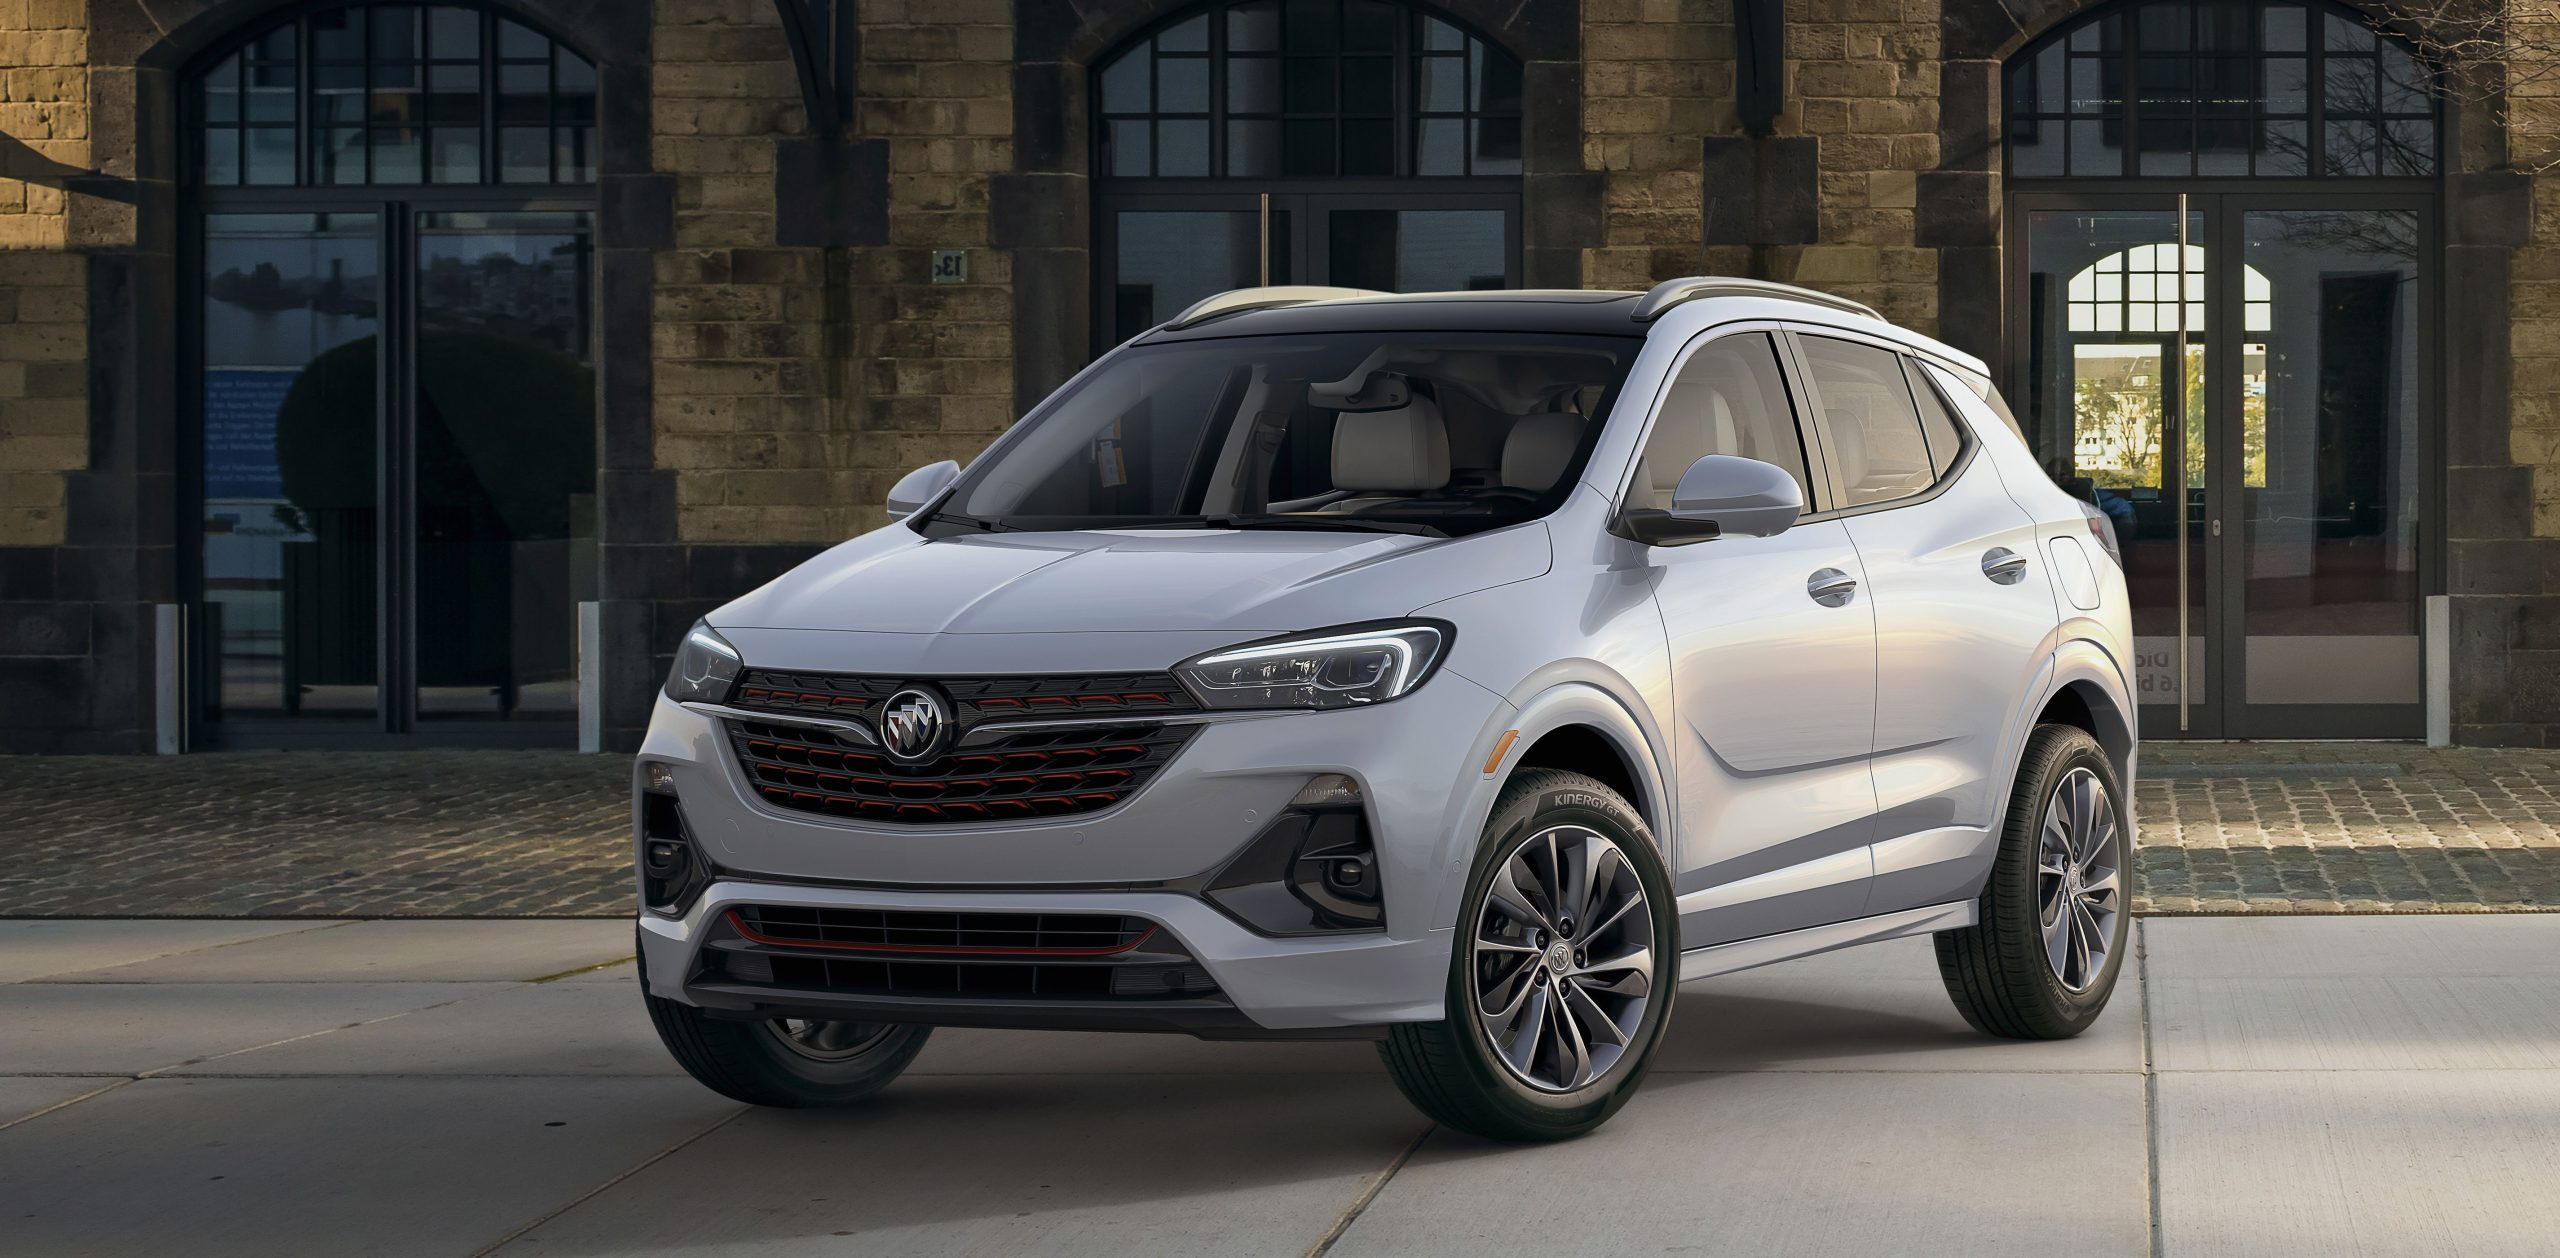 2020 Buick Encore Gx: What We Know So Far New 2021 Buick Encore Gx Test Drive, Engine, Reviews